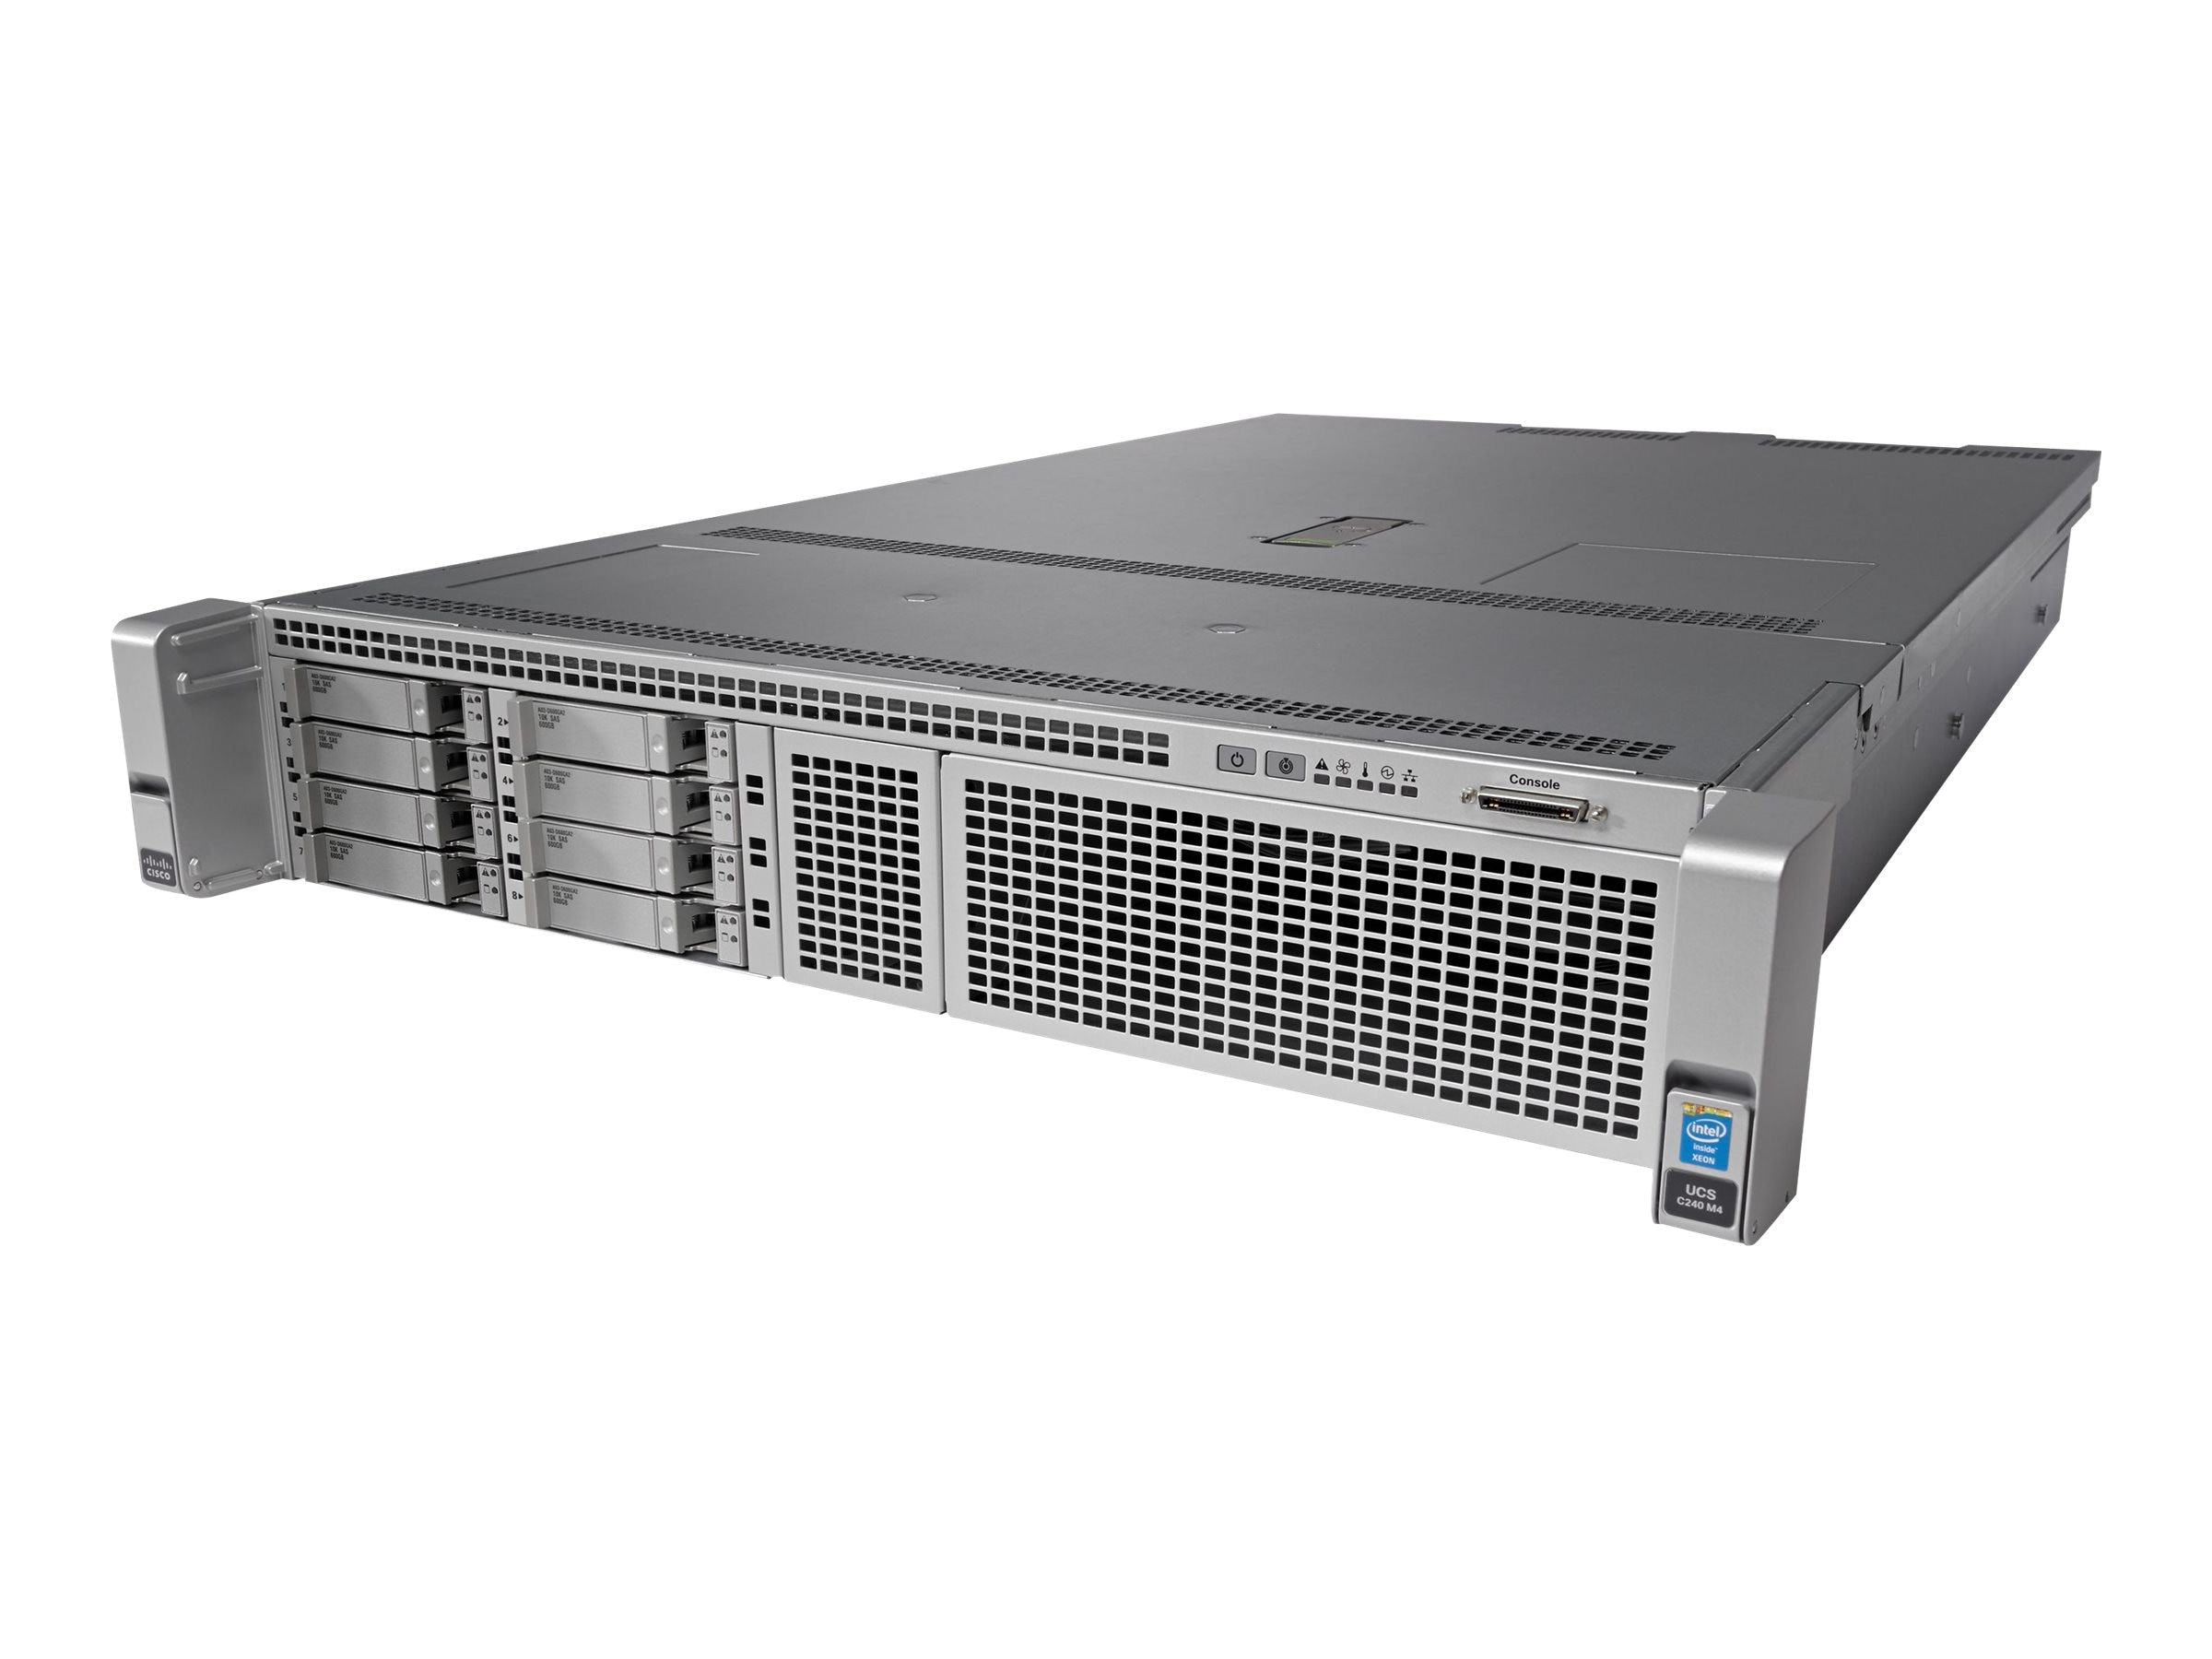 Cisco UCS C240 M4SX (2x)Xeon E5-2660 v3 32GB MRAID, UCS-SPR-C240M4-P1, 17922327, Servers